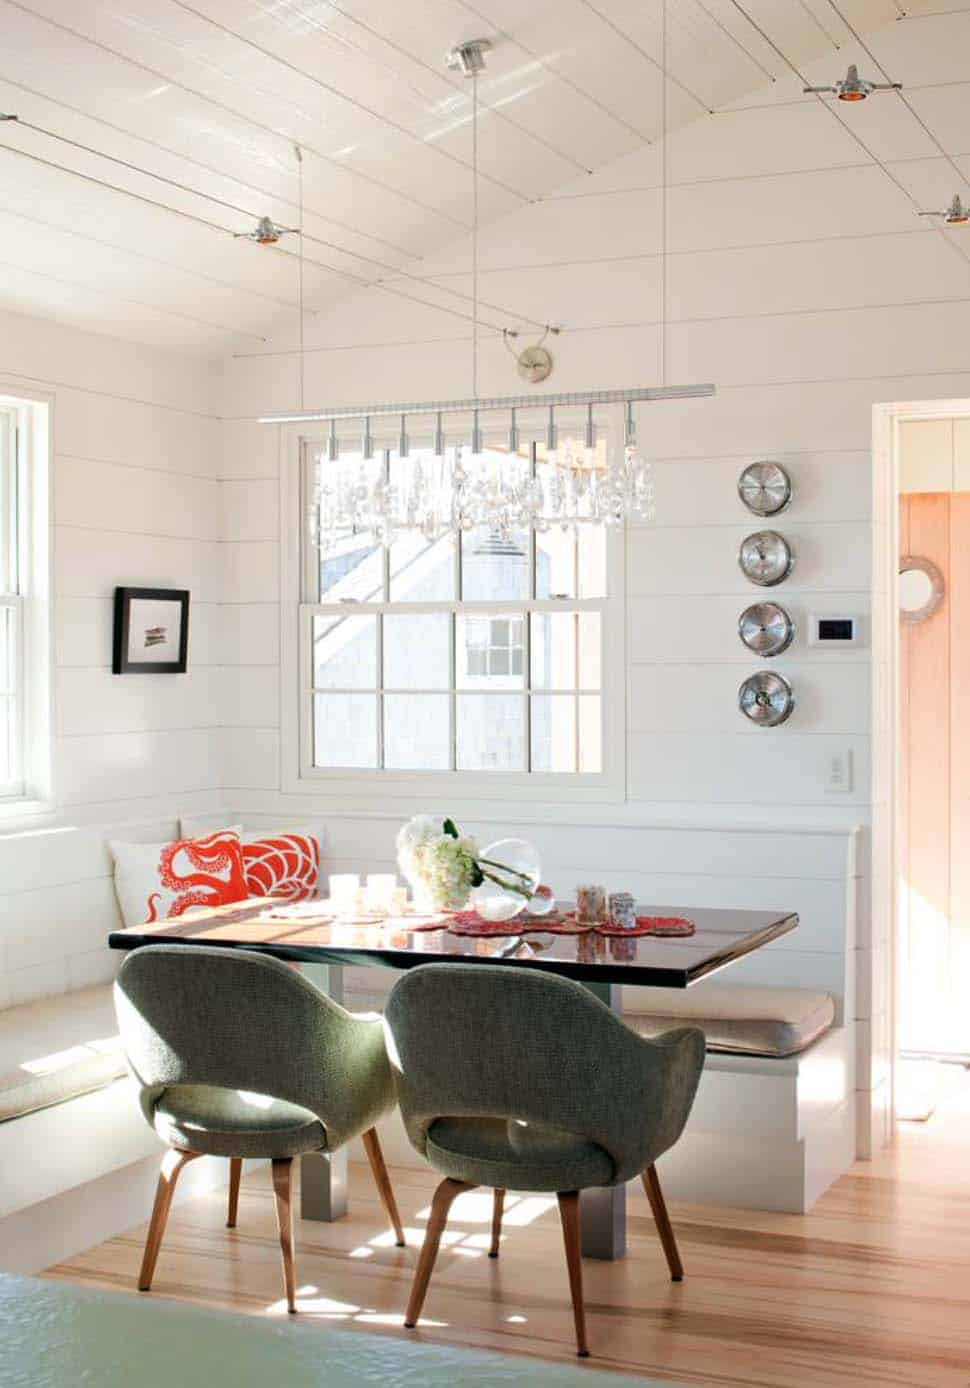 Shiplap Wall Ideas Home-12-1 Kindesign